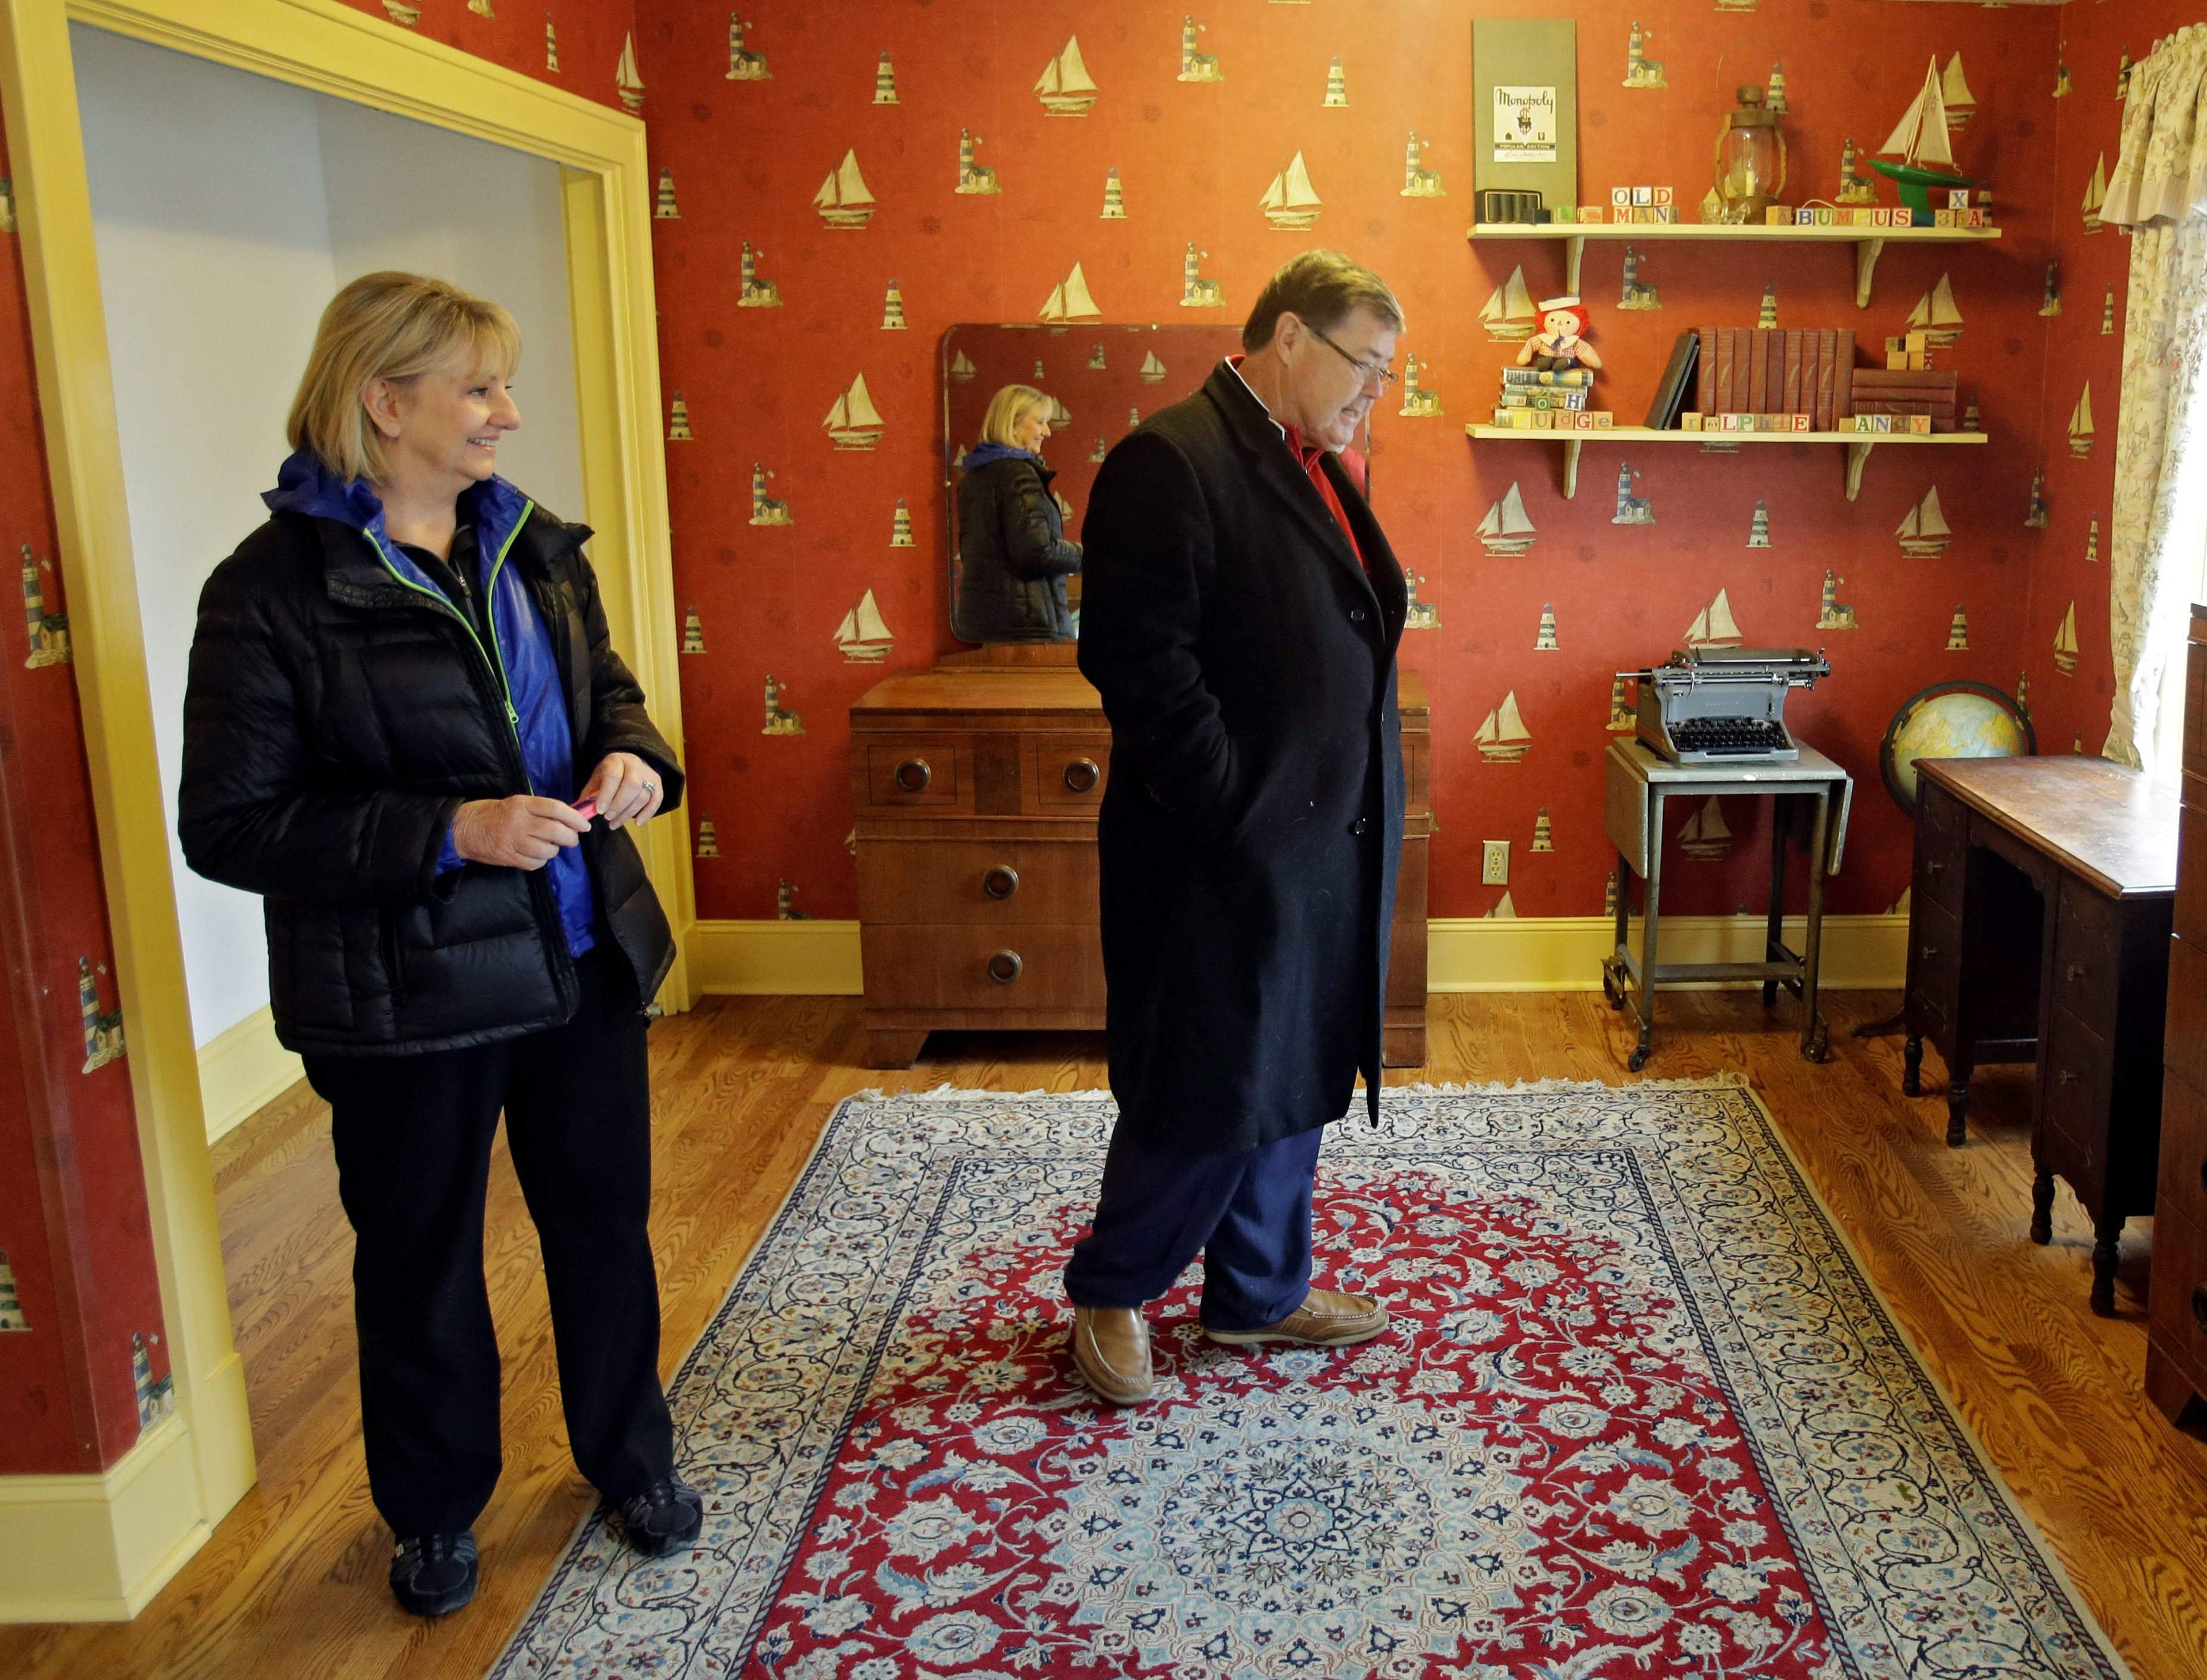 judy and michael paulson from plano texas view ralphies room in the cleveland house where the 1983 movie a christmas story was filmed - Where Was The Christmas Story Filmed